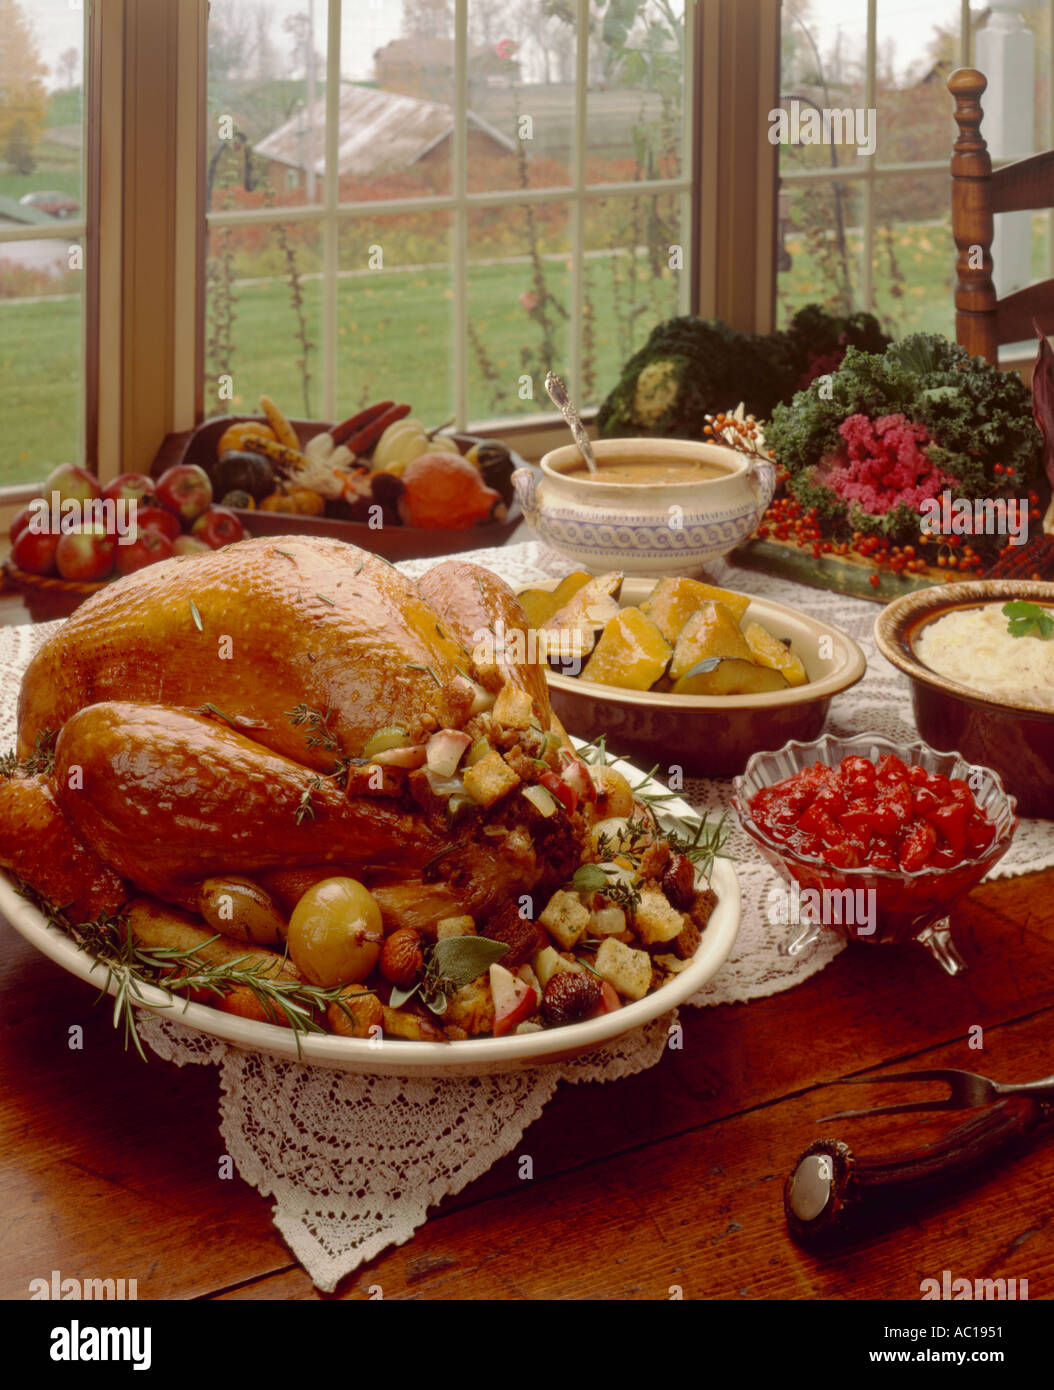 Thanksgiving Table Setting Turkey Dinner & Thanksgiving Table Setting Turkey Dinner Stock Photo: 792913 - Alamy